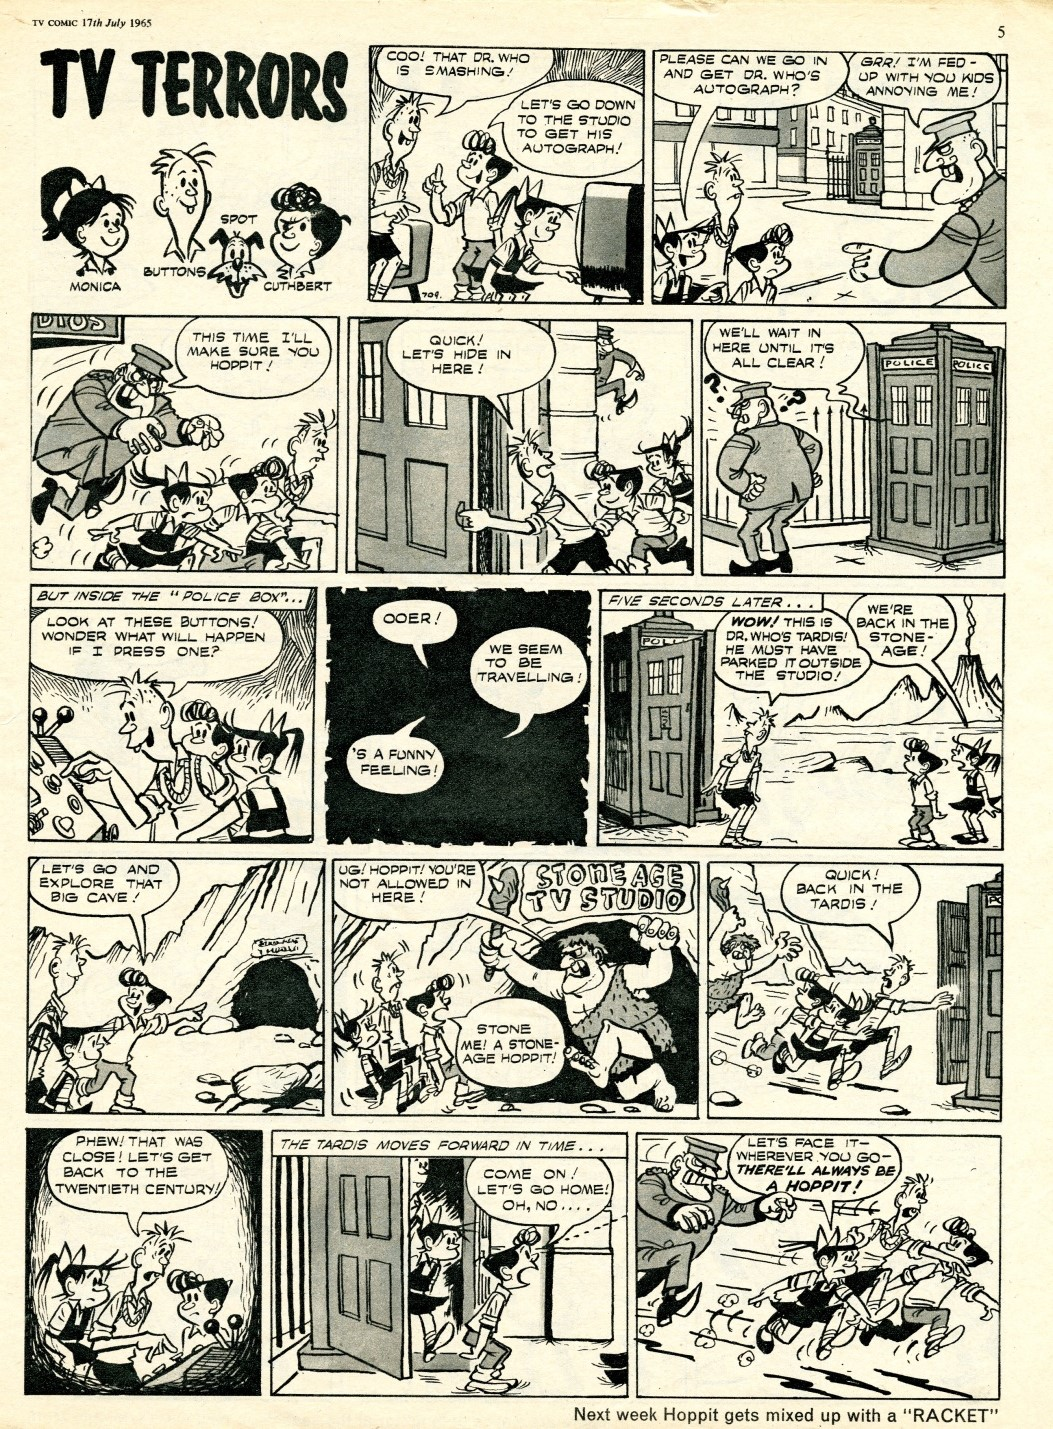 TV Comic #709, July 17, 1965; the TARDIS features in the TV Terrors strip